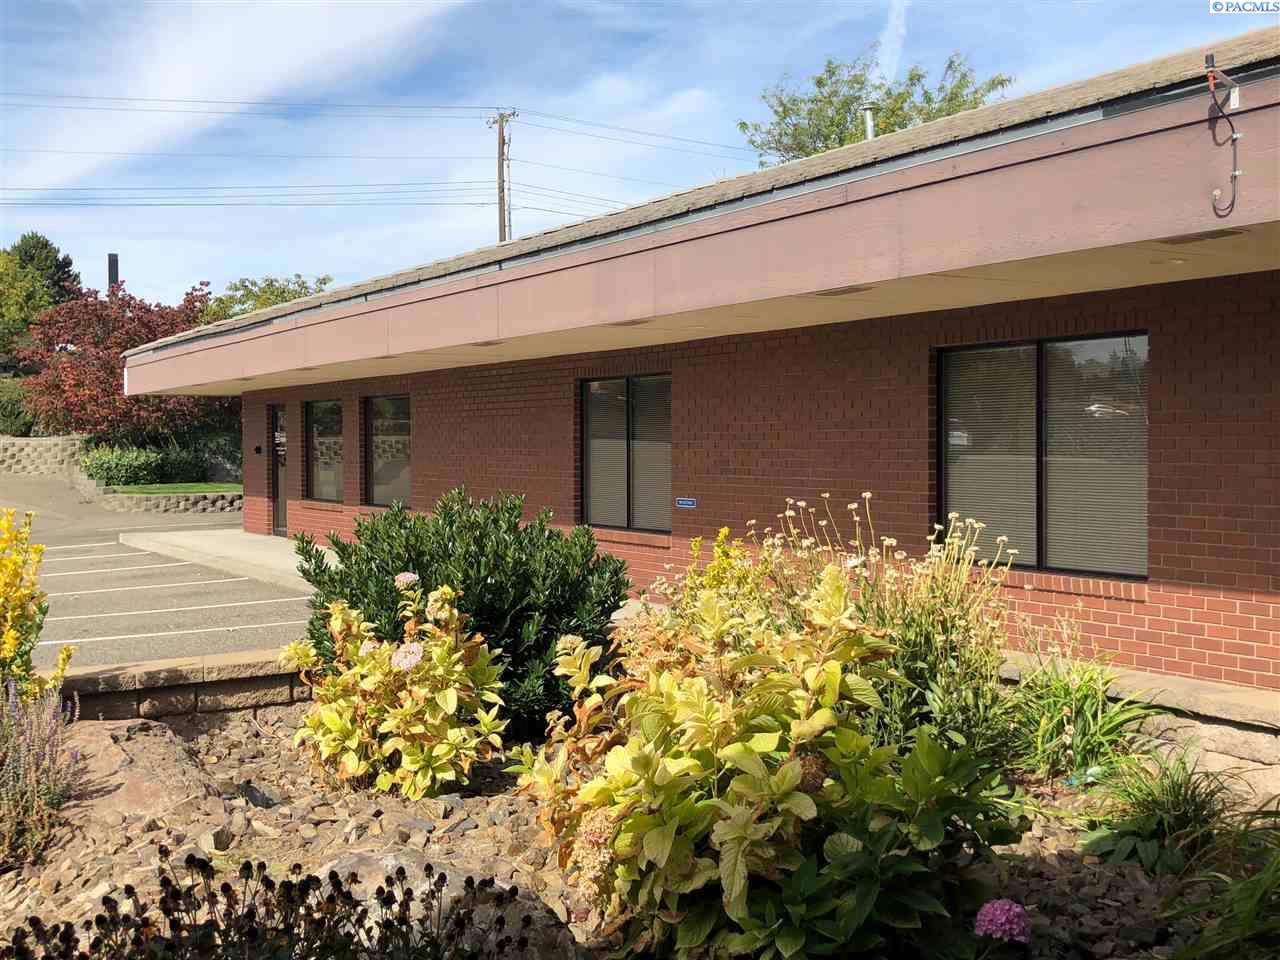 Offices for Sale at 602 N Colorado St. - Suite B Kennewick, Washington 99336 United States